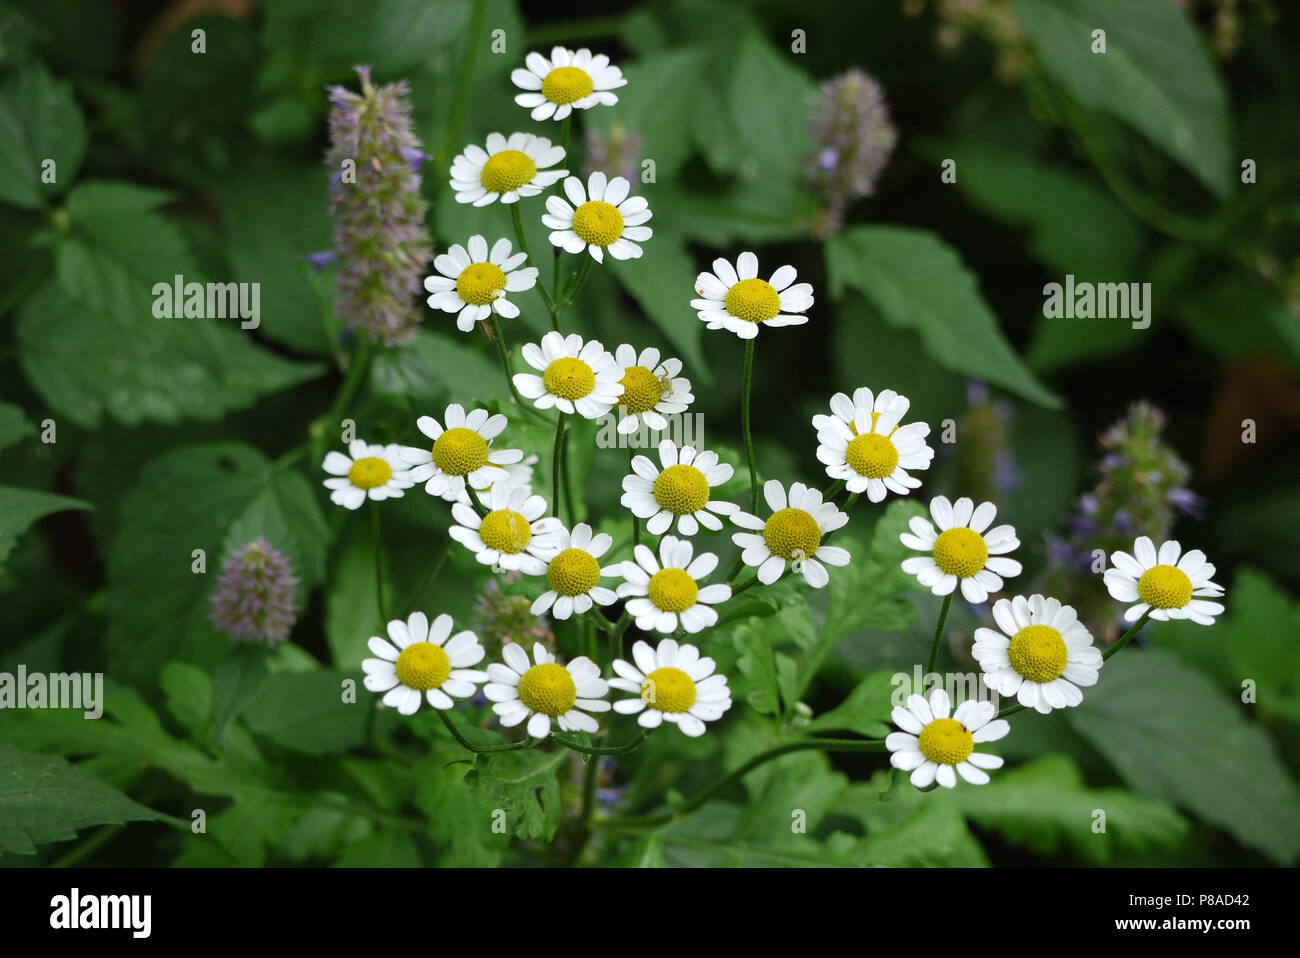 Fine beautiful white daisies with yellow cores on stems with green leaves . For your design - Stock Image